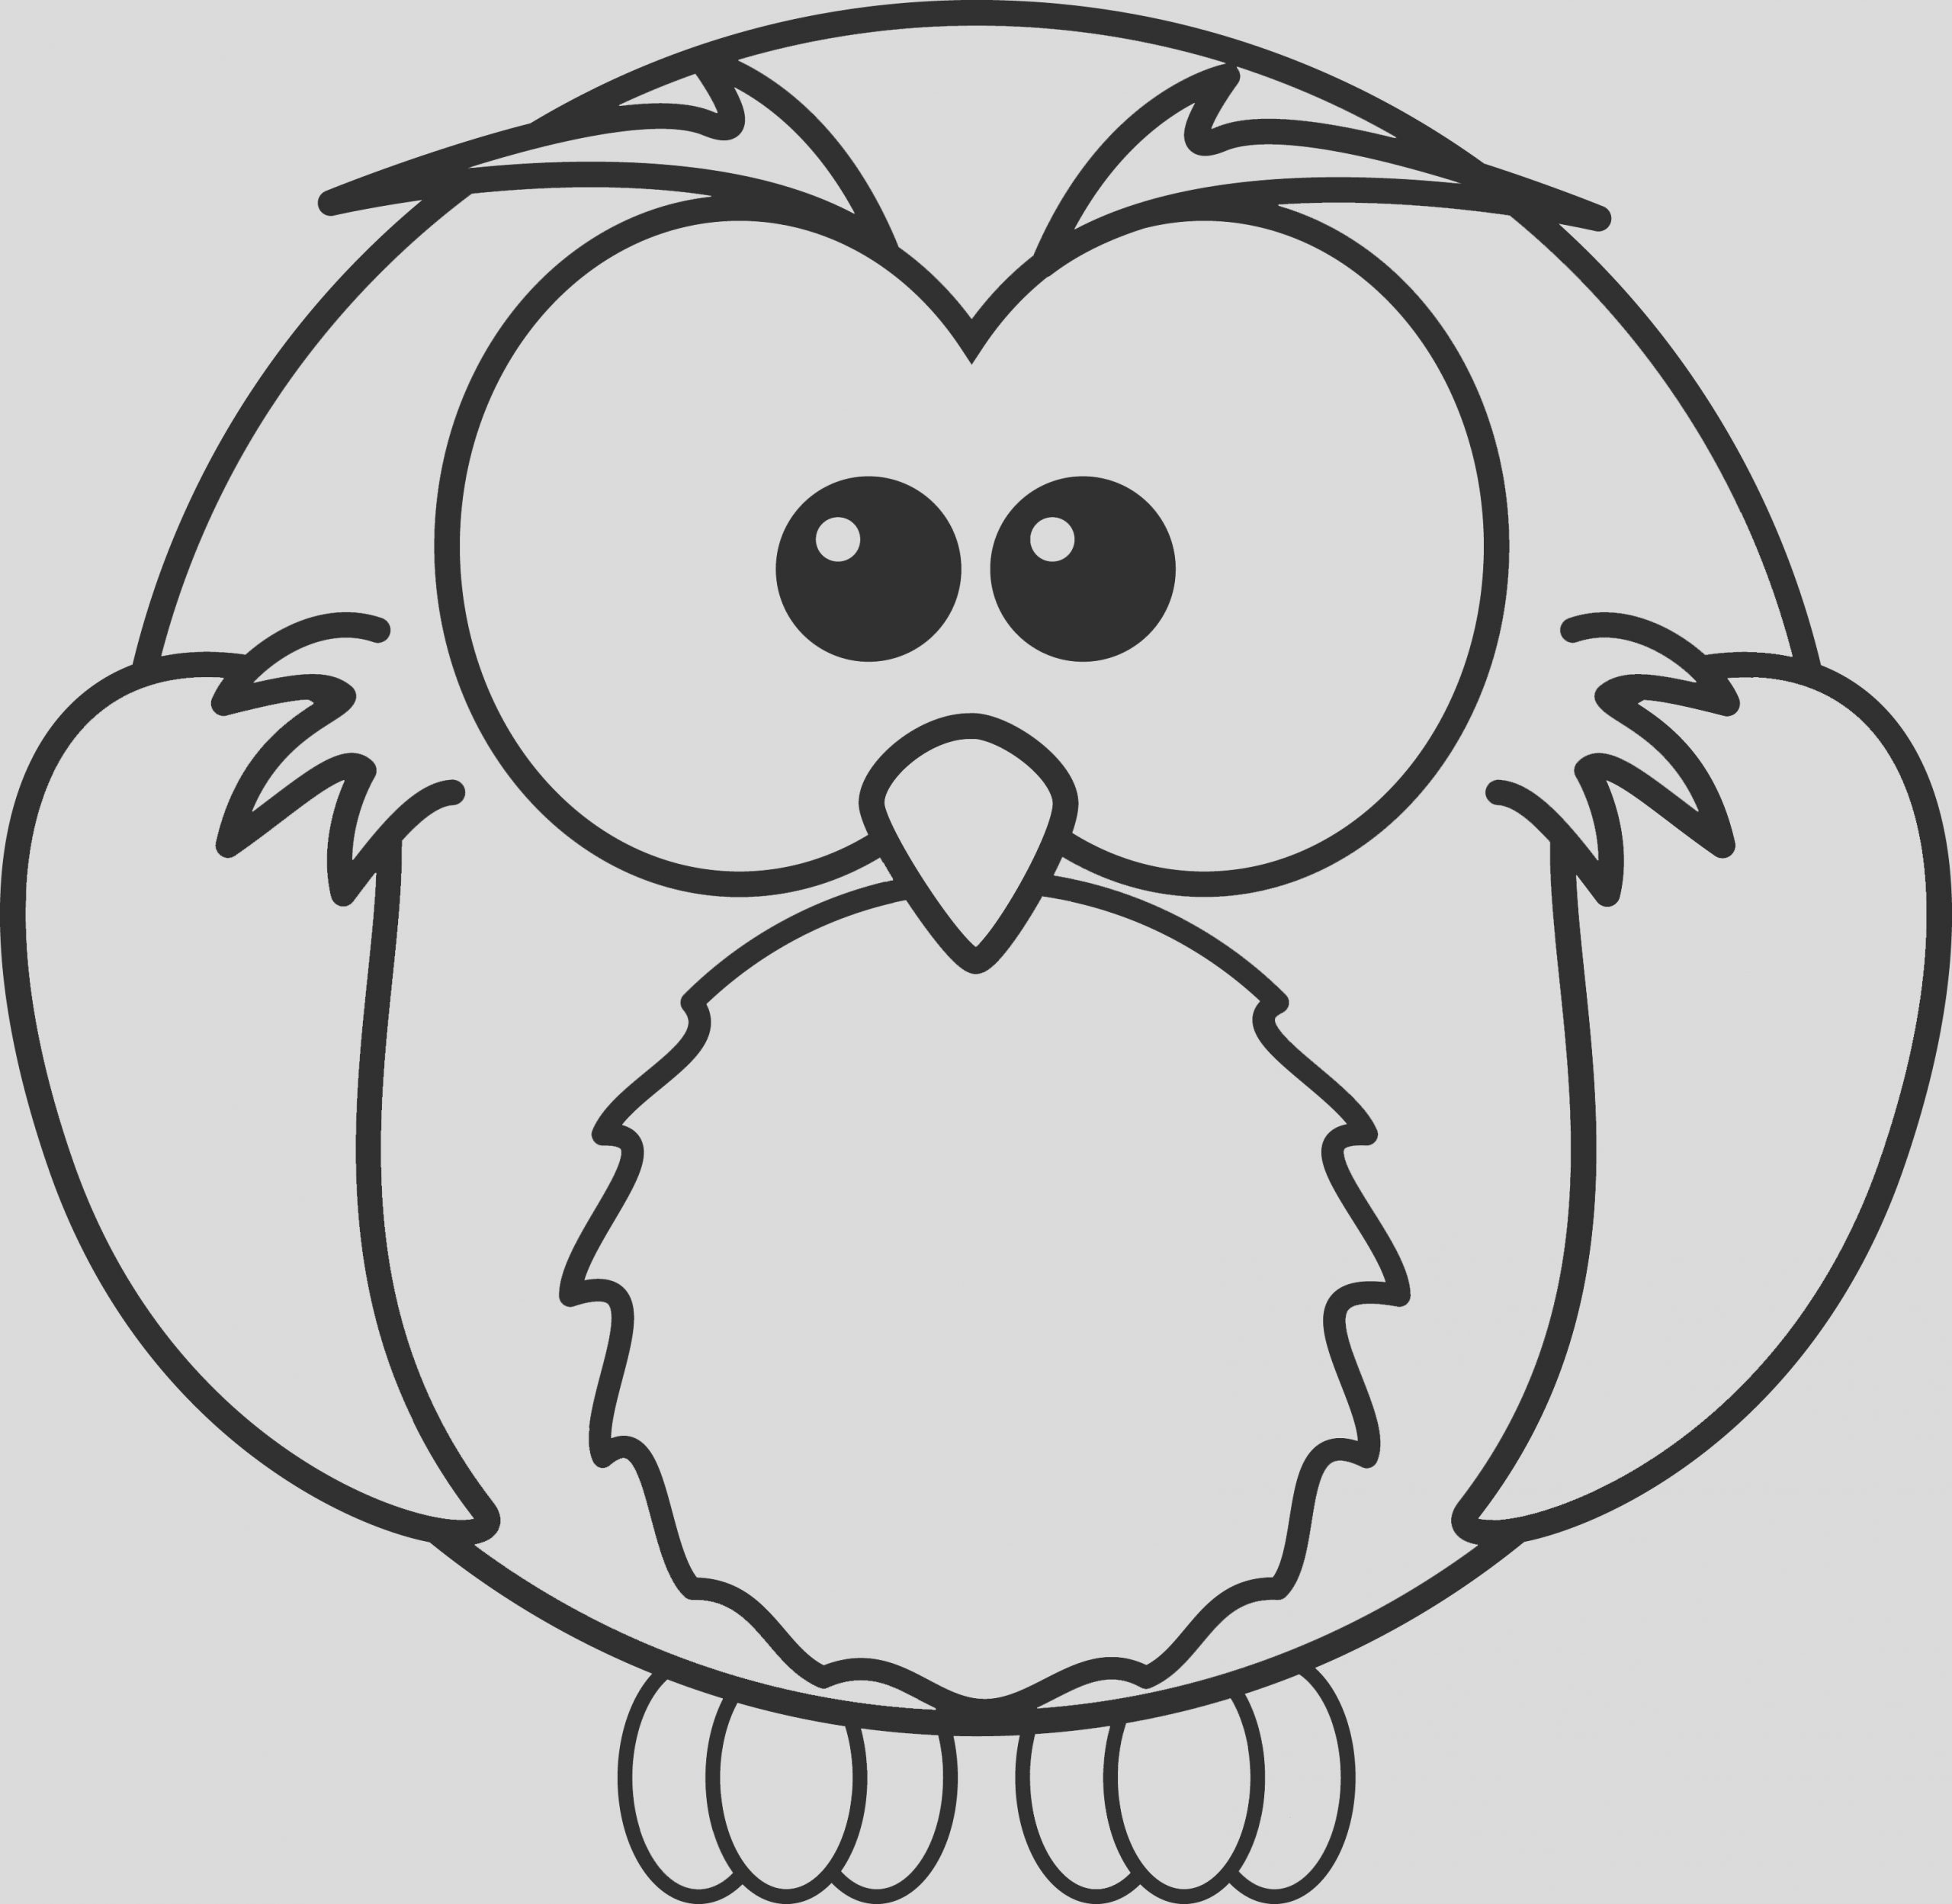 175 Free Cartoon Owl Coloring Page Clipart